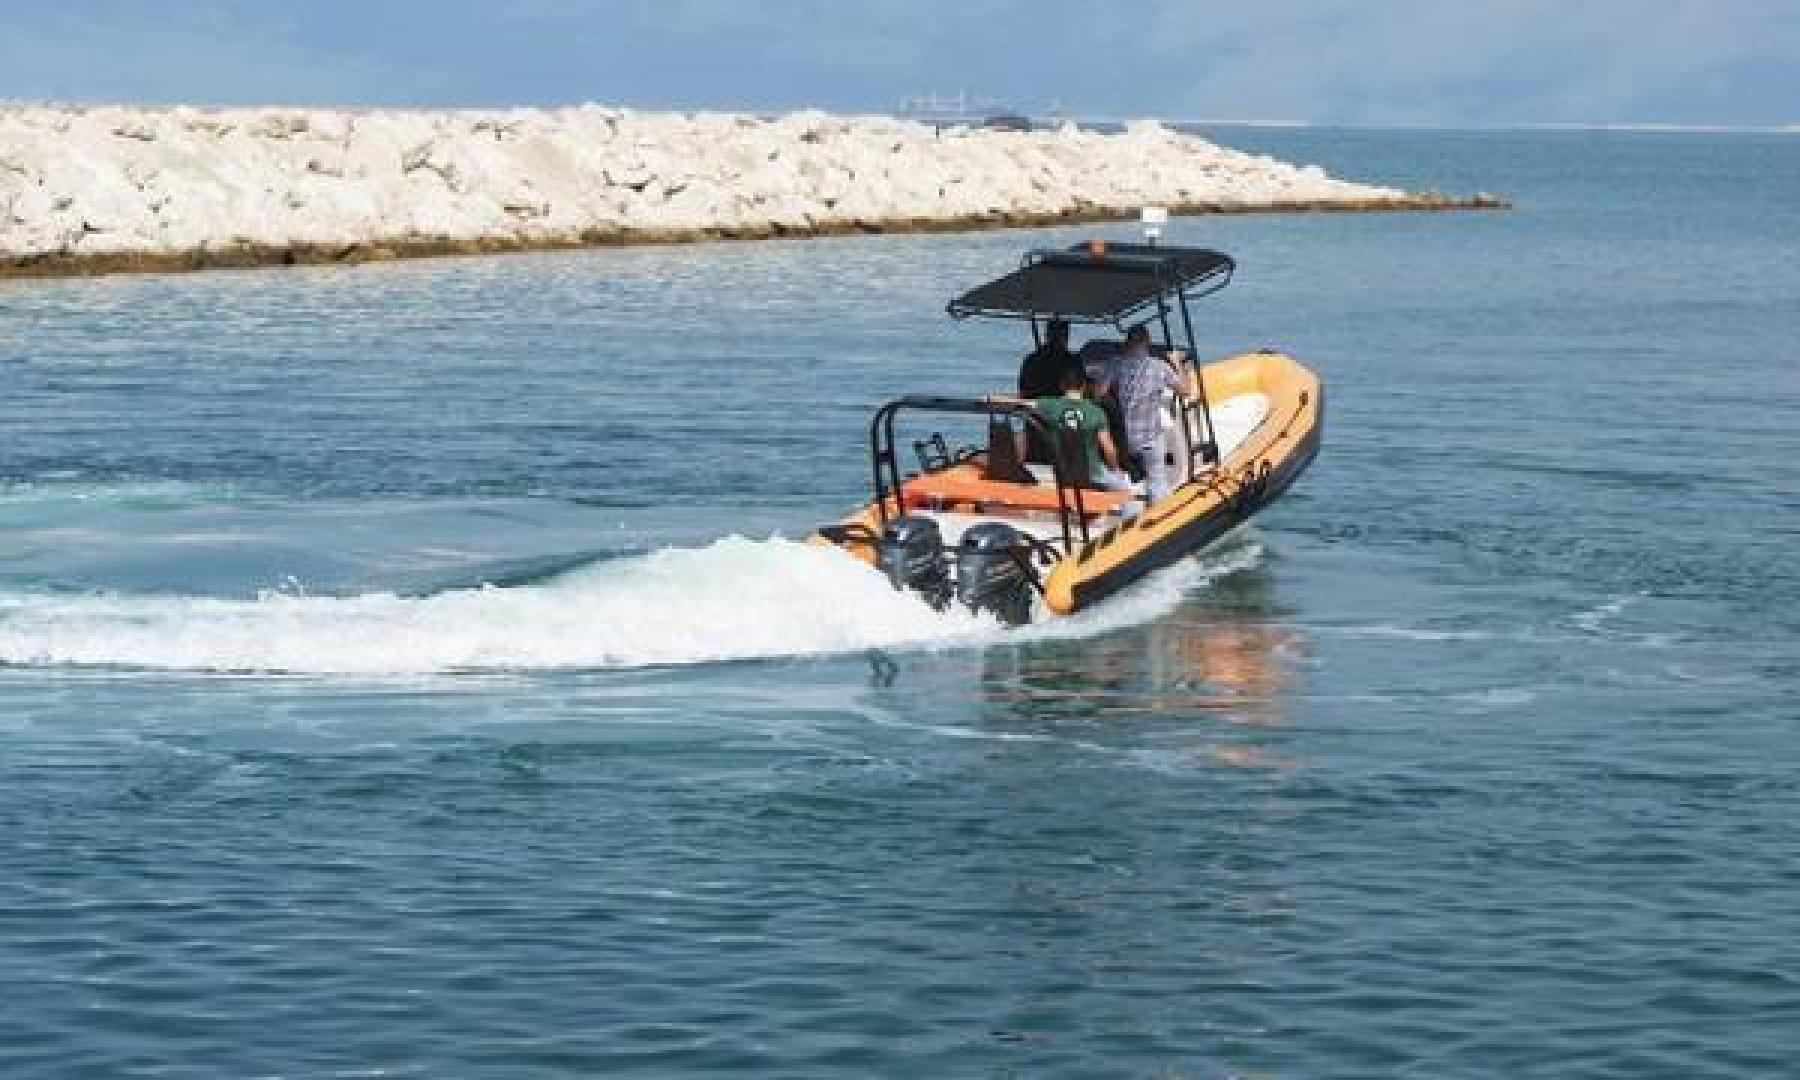 Ocean Craft Marine-9.5M RHIB Professional Search and Rescue 2021-Ocean Craft Marine 9.5M RHIB Professional Search and Rescue Fort Lauderdale-Florida-United States-1522809 | Thumbnail